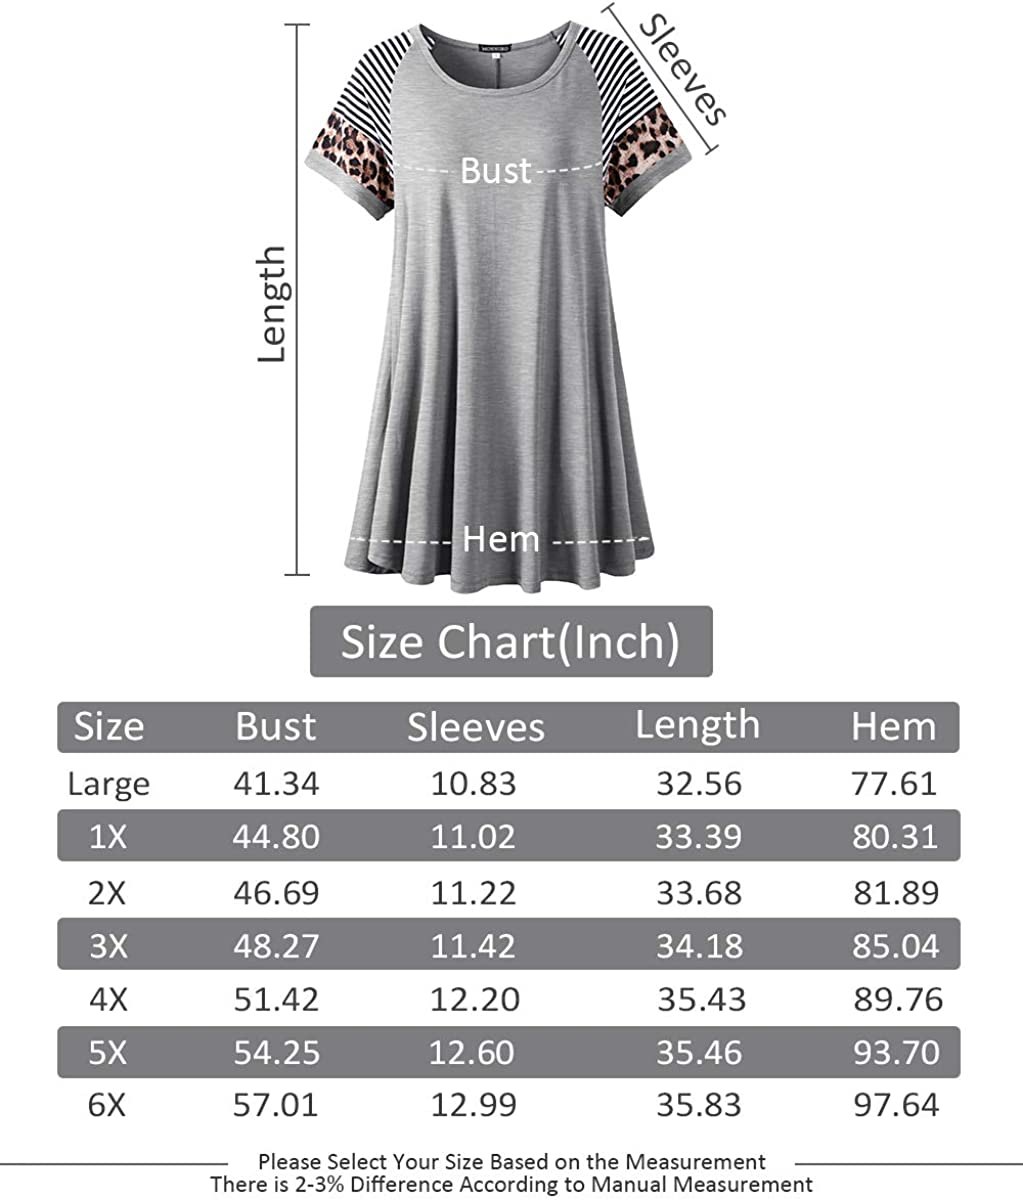 MONNURO Women's Color Block Short Sleeve Plus Size Tunic Tops Casual Loose Scoop Neck Summer T-Shirts